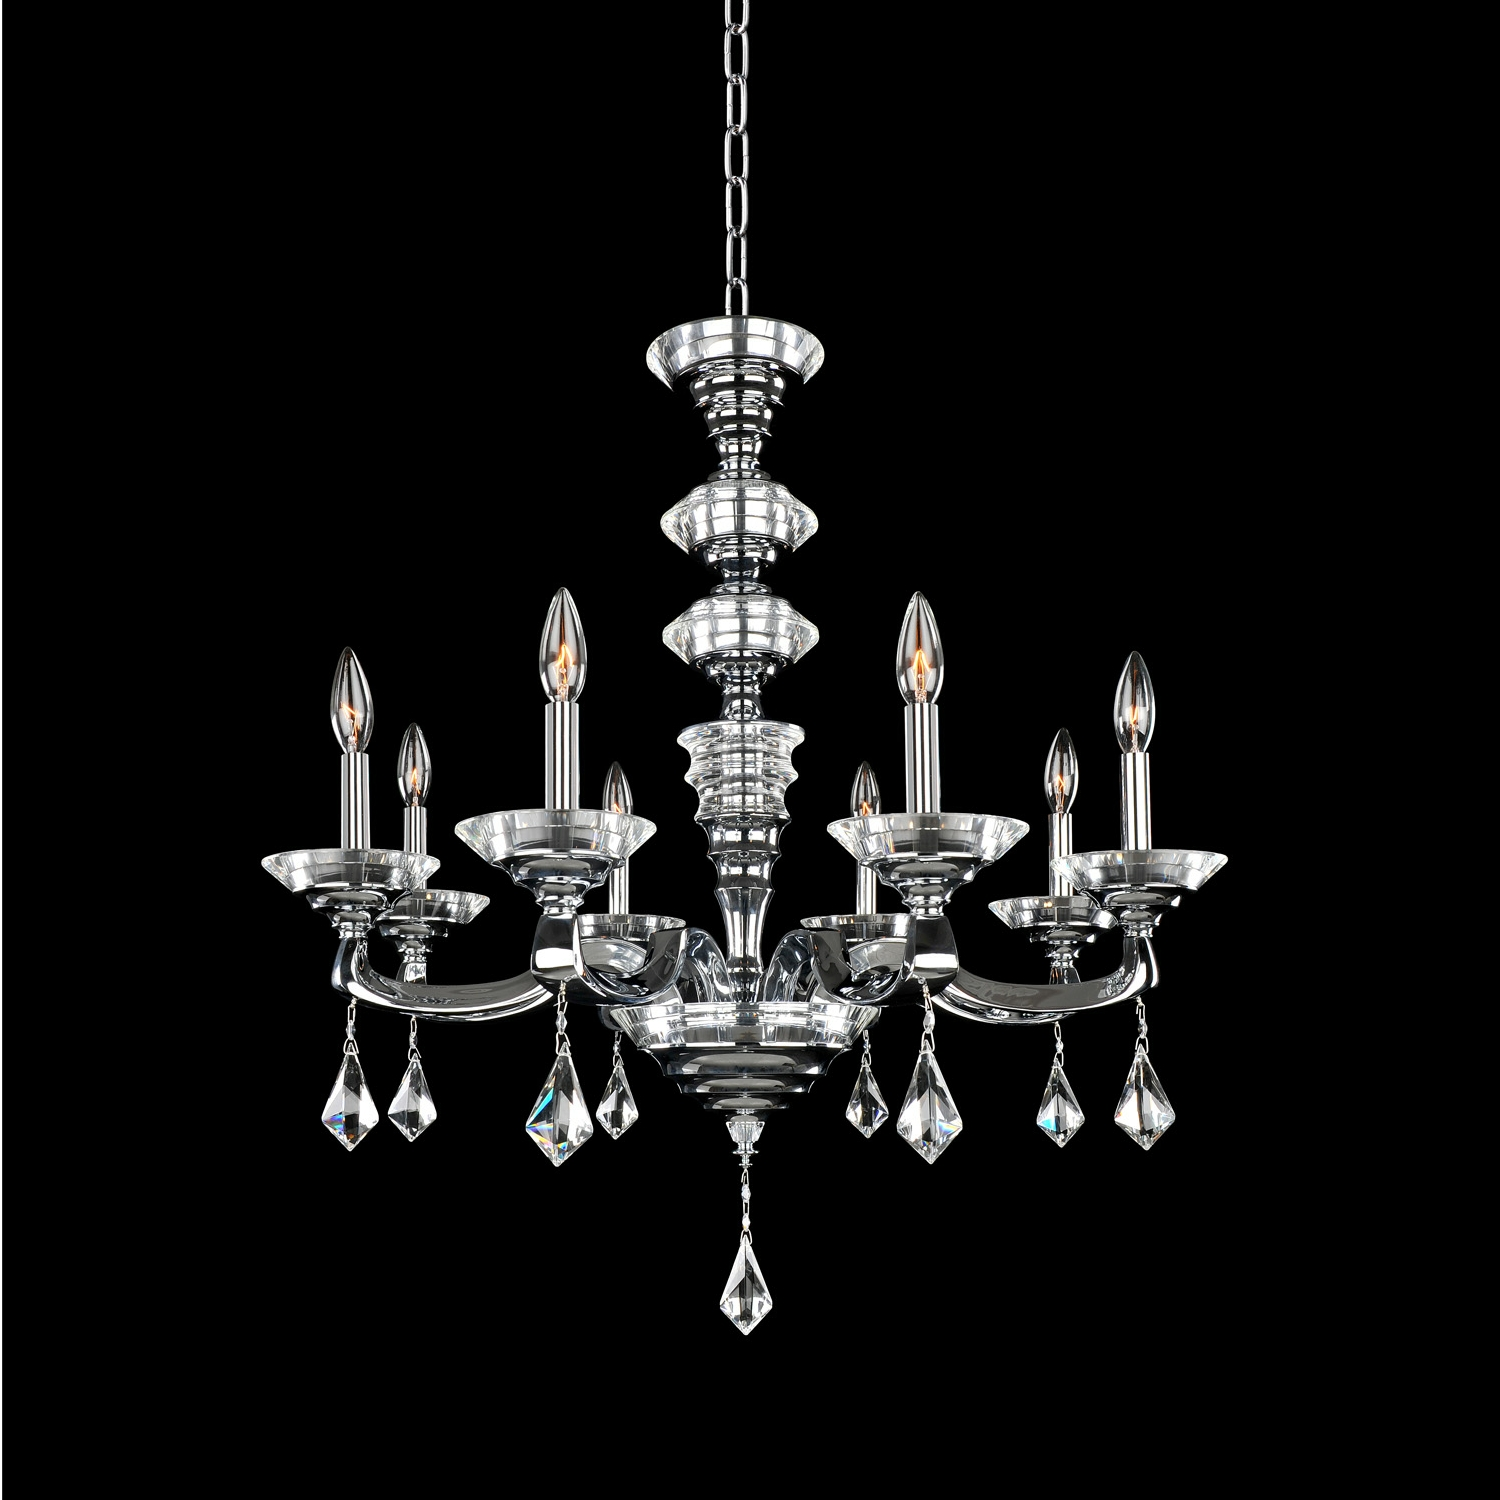 Cosimo 8 Light Chandelier